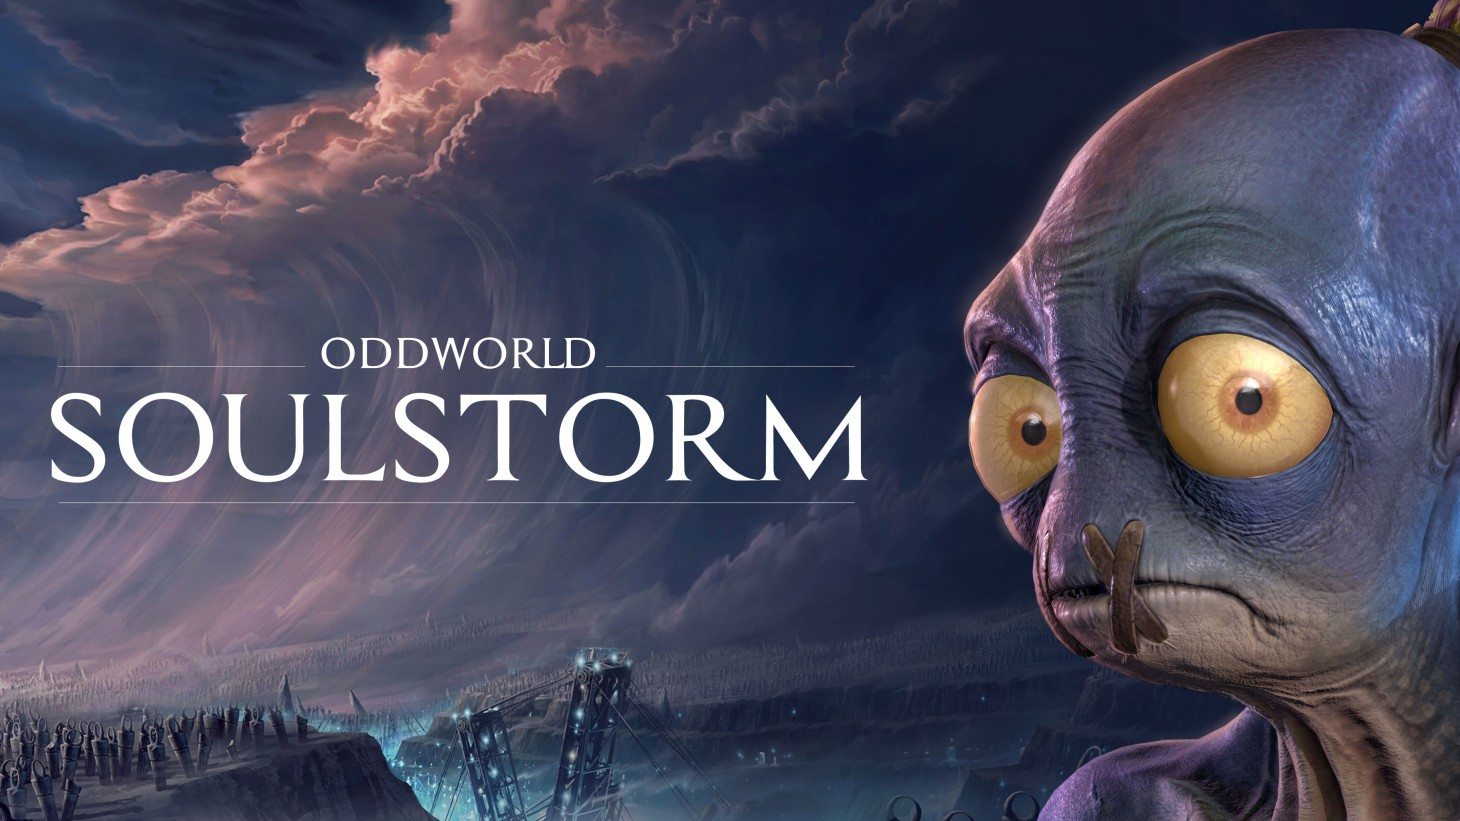 3d Wallpaper For Home Amazon Oddworld Soulstorm Is The New True Sequel For Abe 20